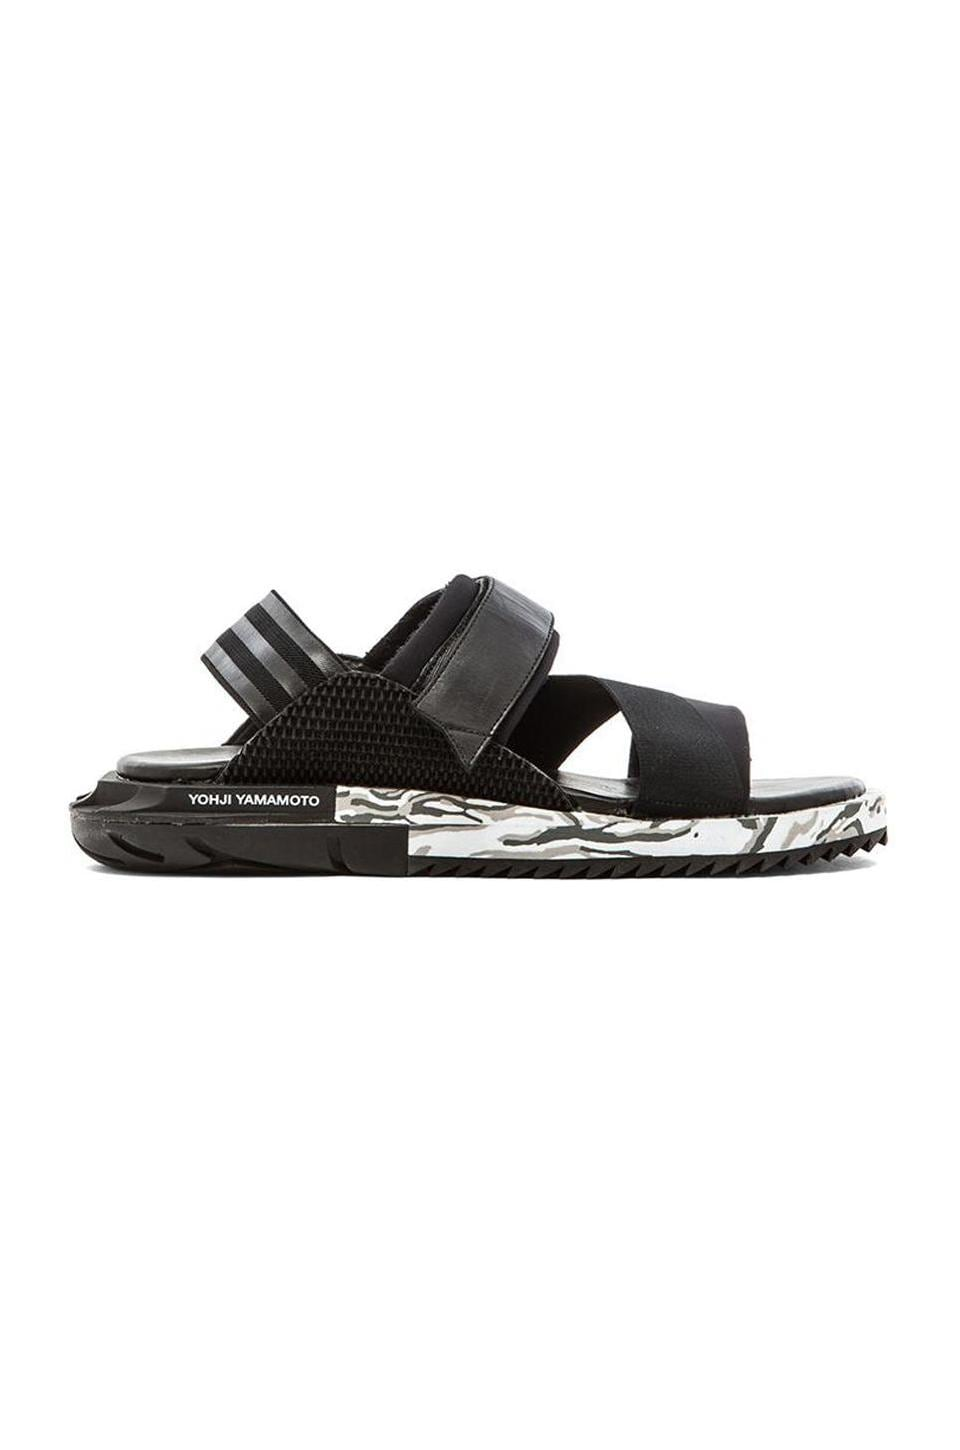 d4fc430a7ad7f Y-3 Yohji Yamamoto Kaohe Sandal in BlkY-3 BlkY-3 BlkY-3